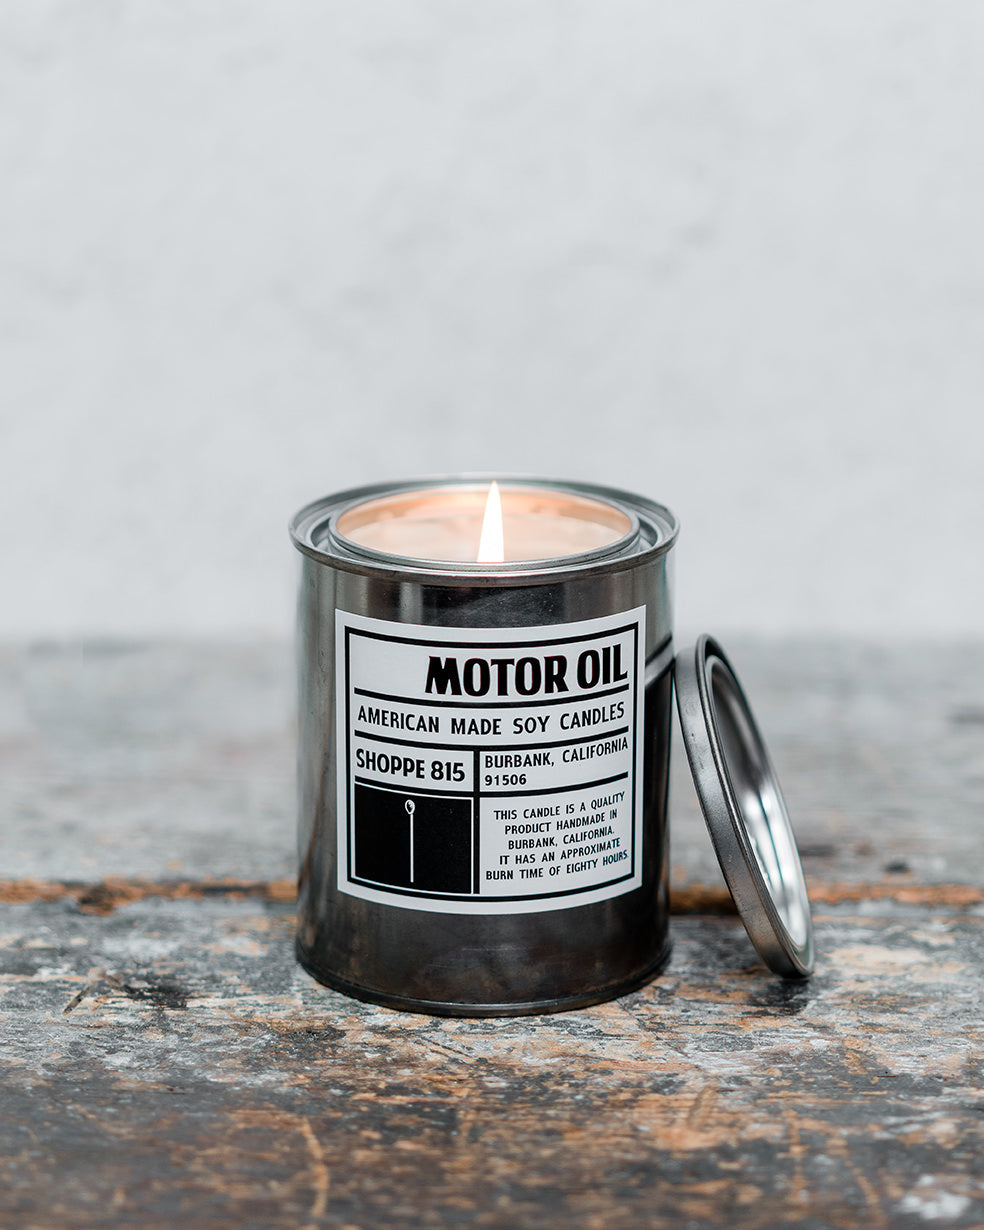 Lit Motor Oil gender neutral tin candle on wooden shelf